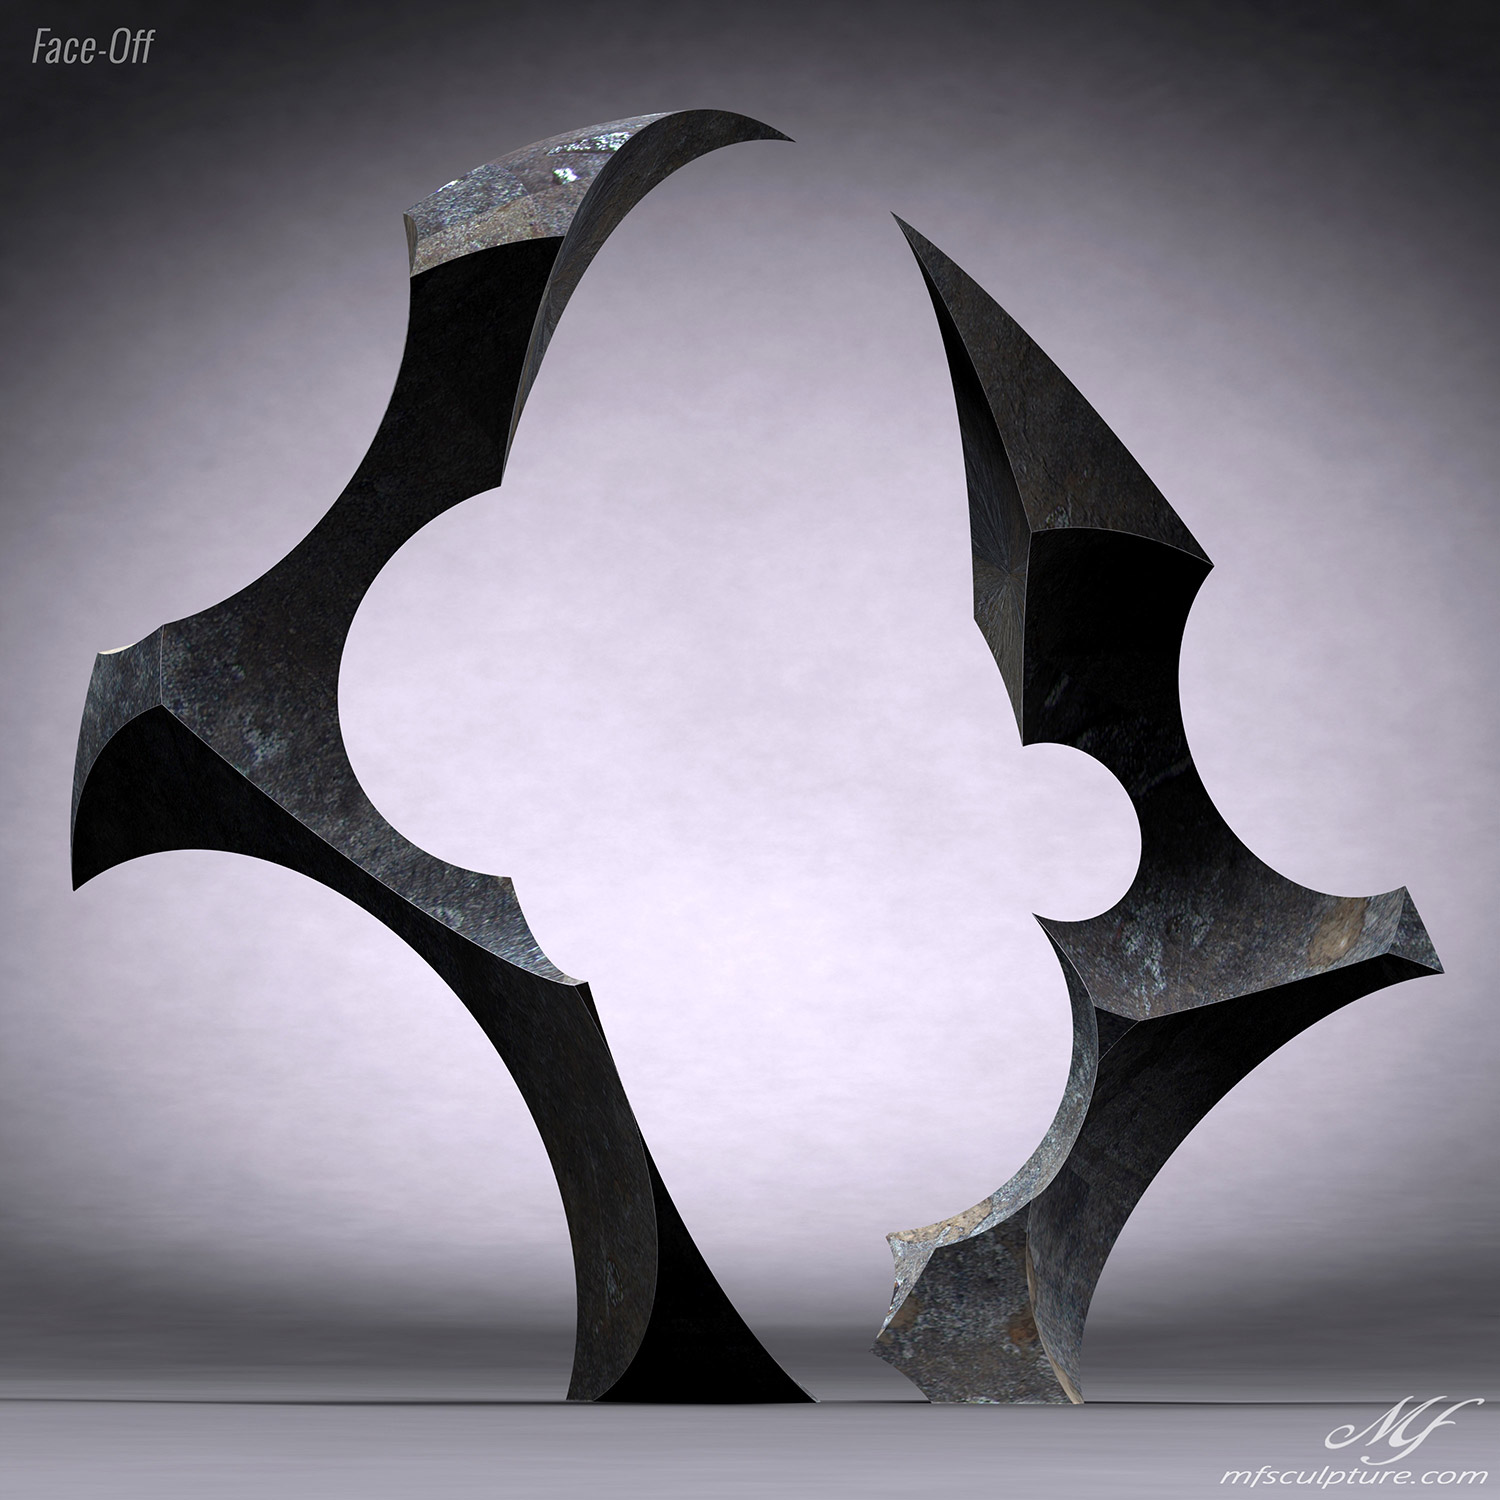 Contemporary Sculpture Abstract Face Off 1